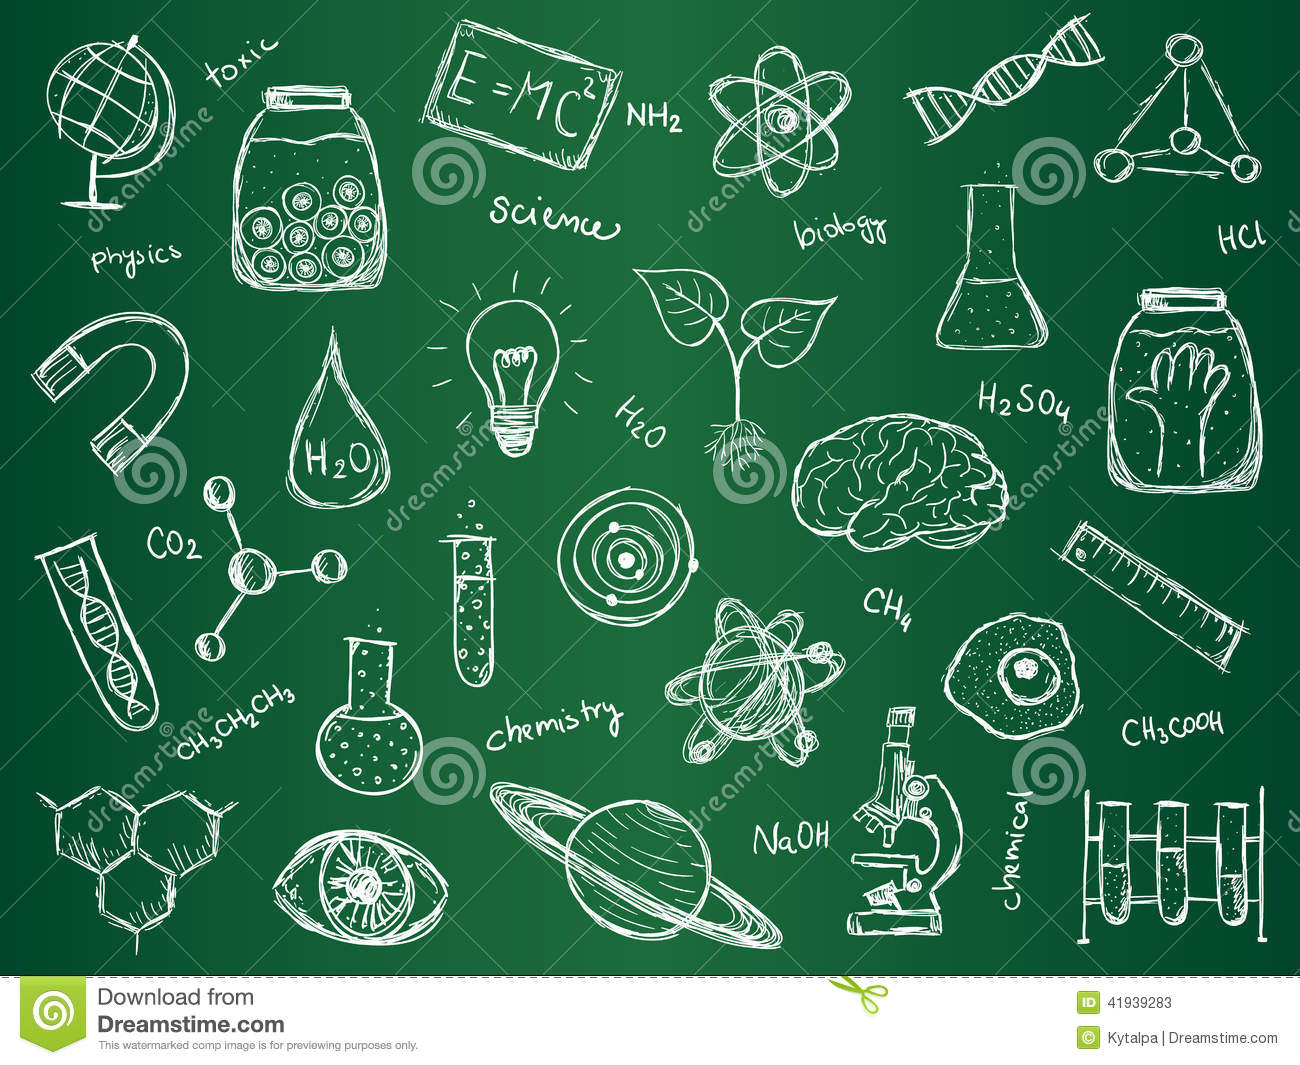 ... of scientific stuff on green school board. Hand drawn style